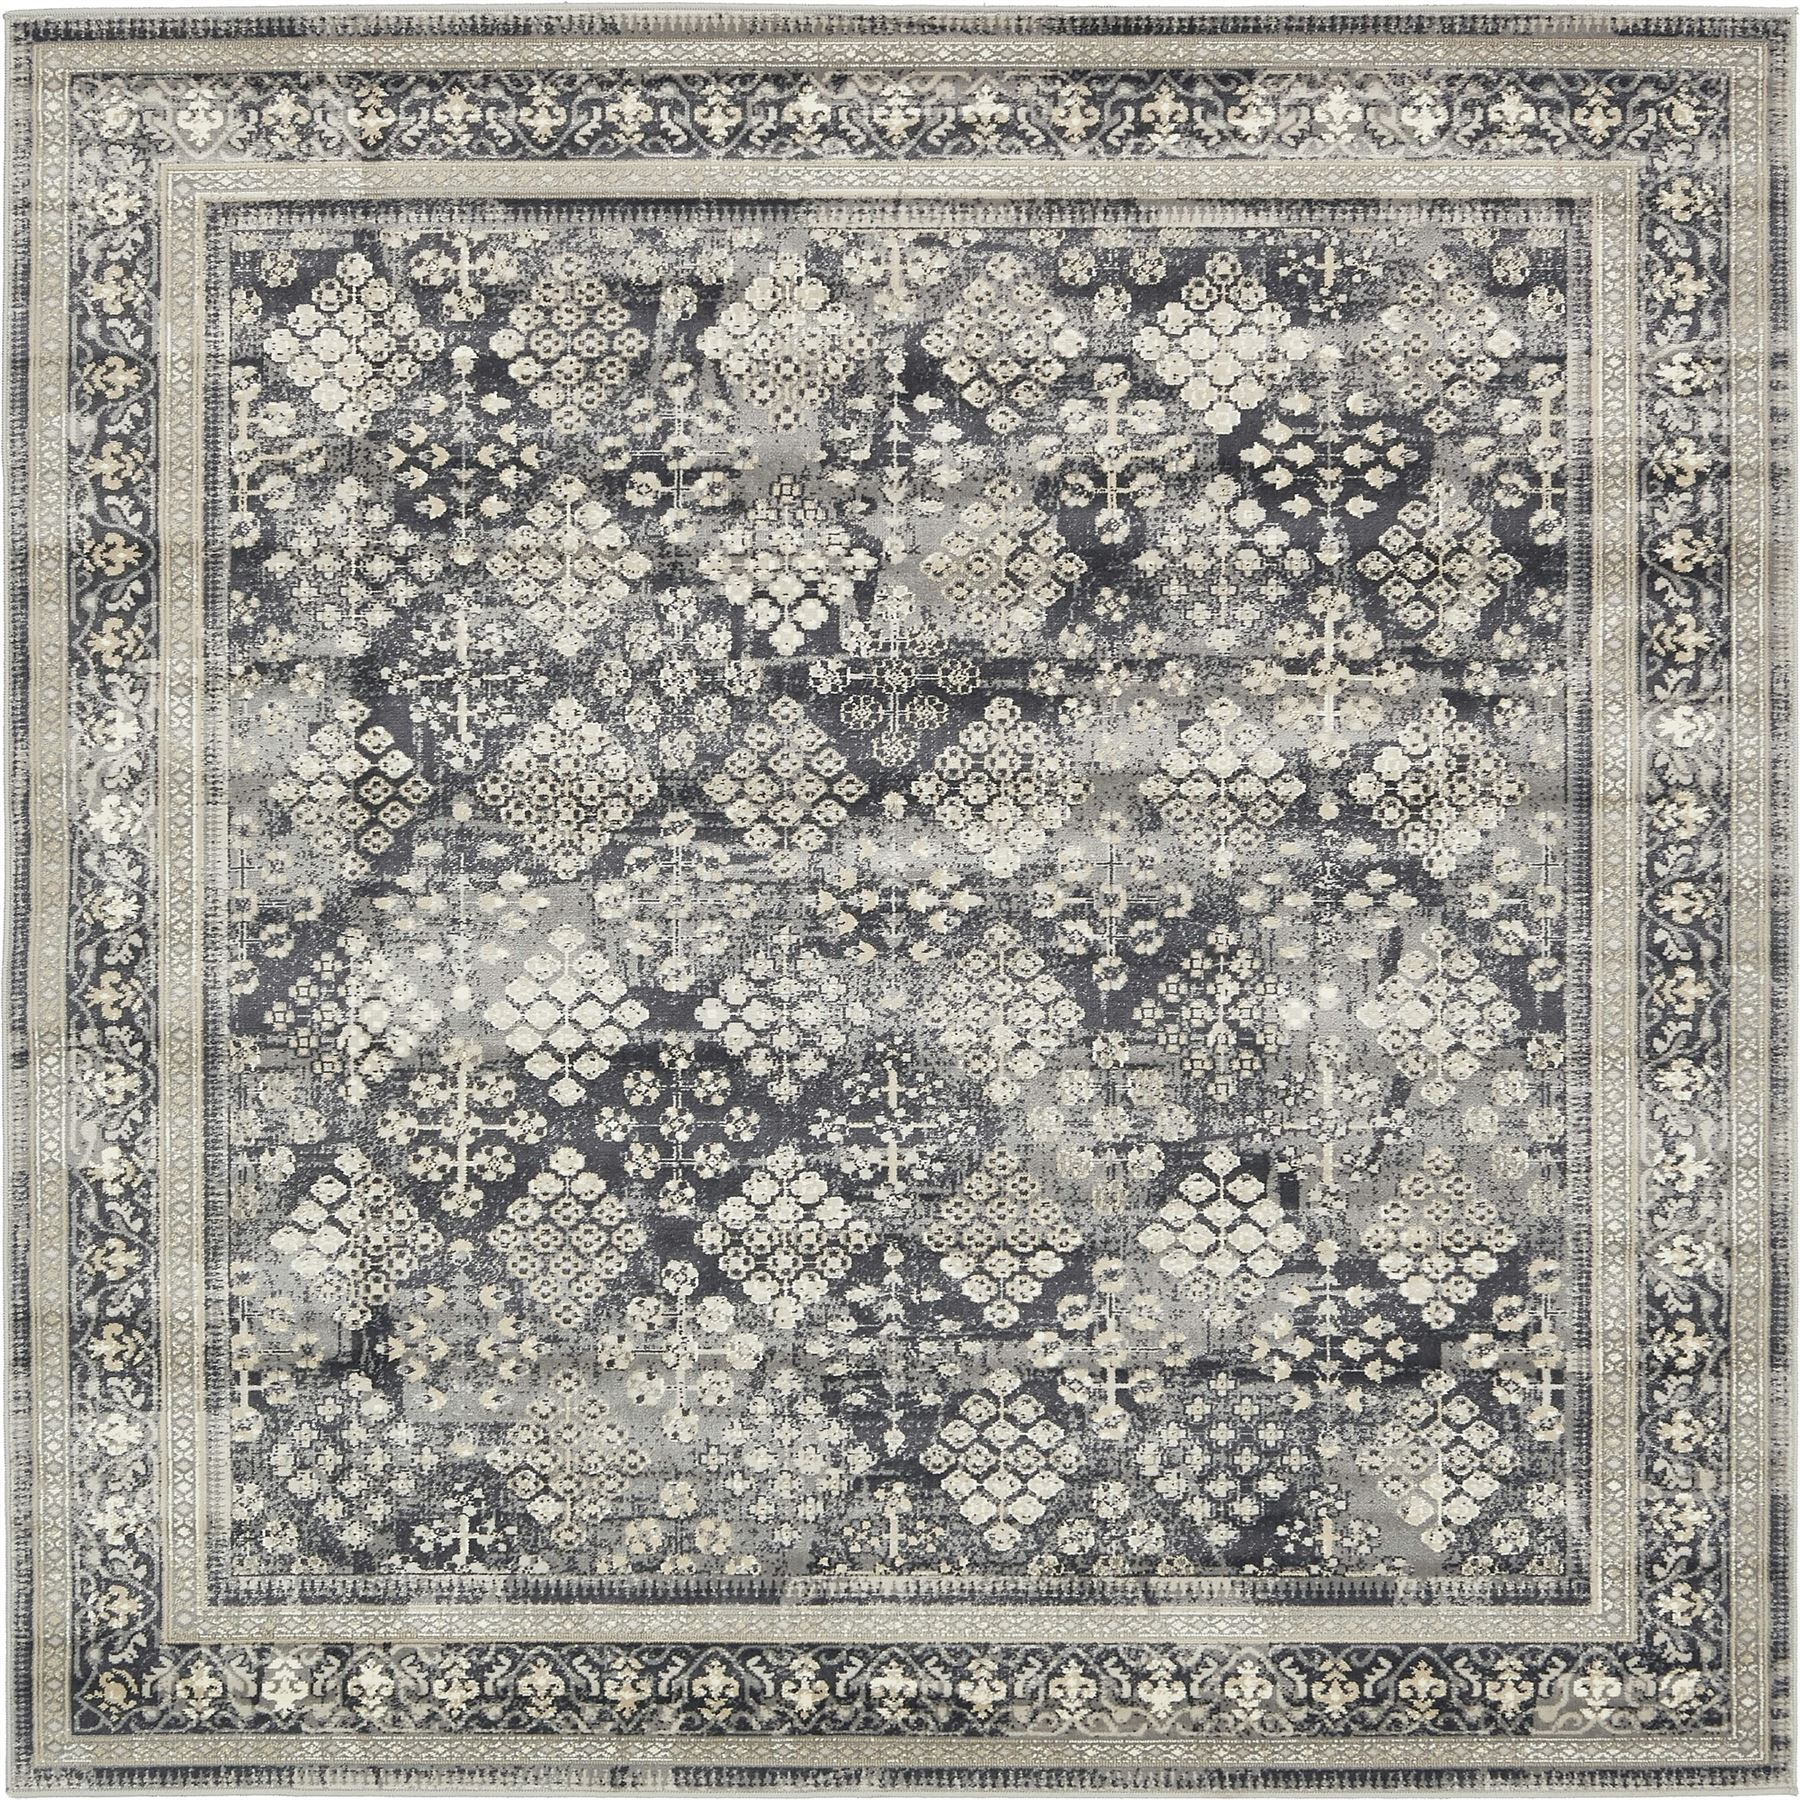 Modern Rugs Vintage: Over-dyed Traditional Carpet Vintage Floor Modern Rug Area